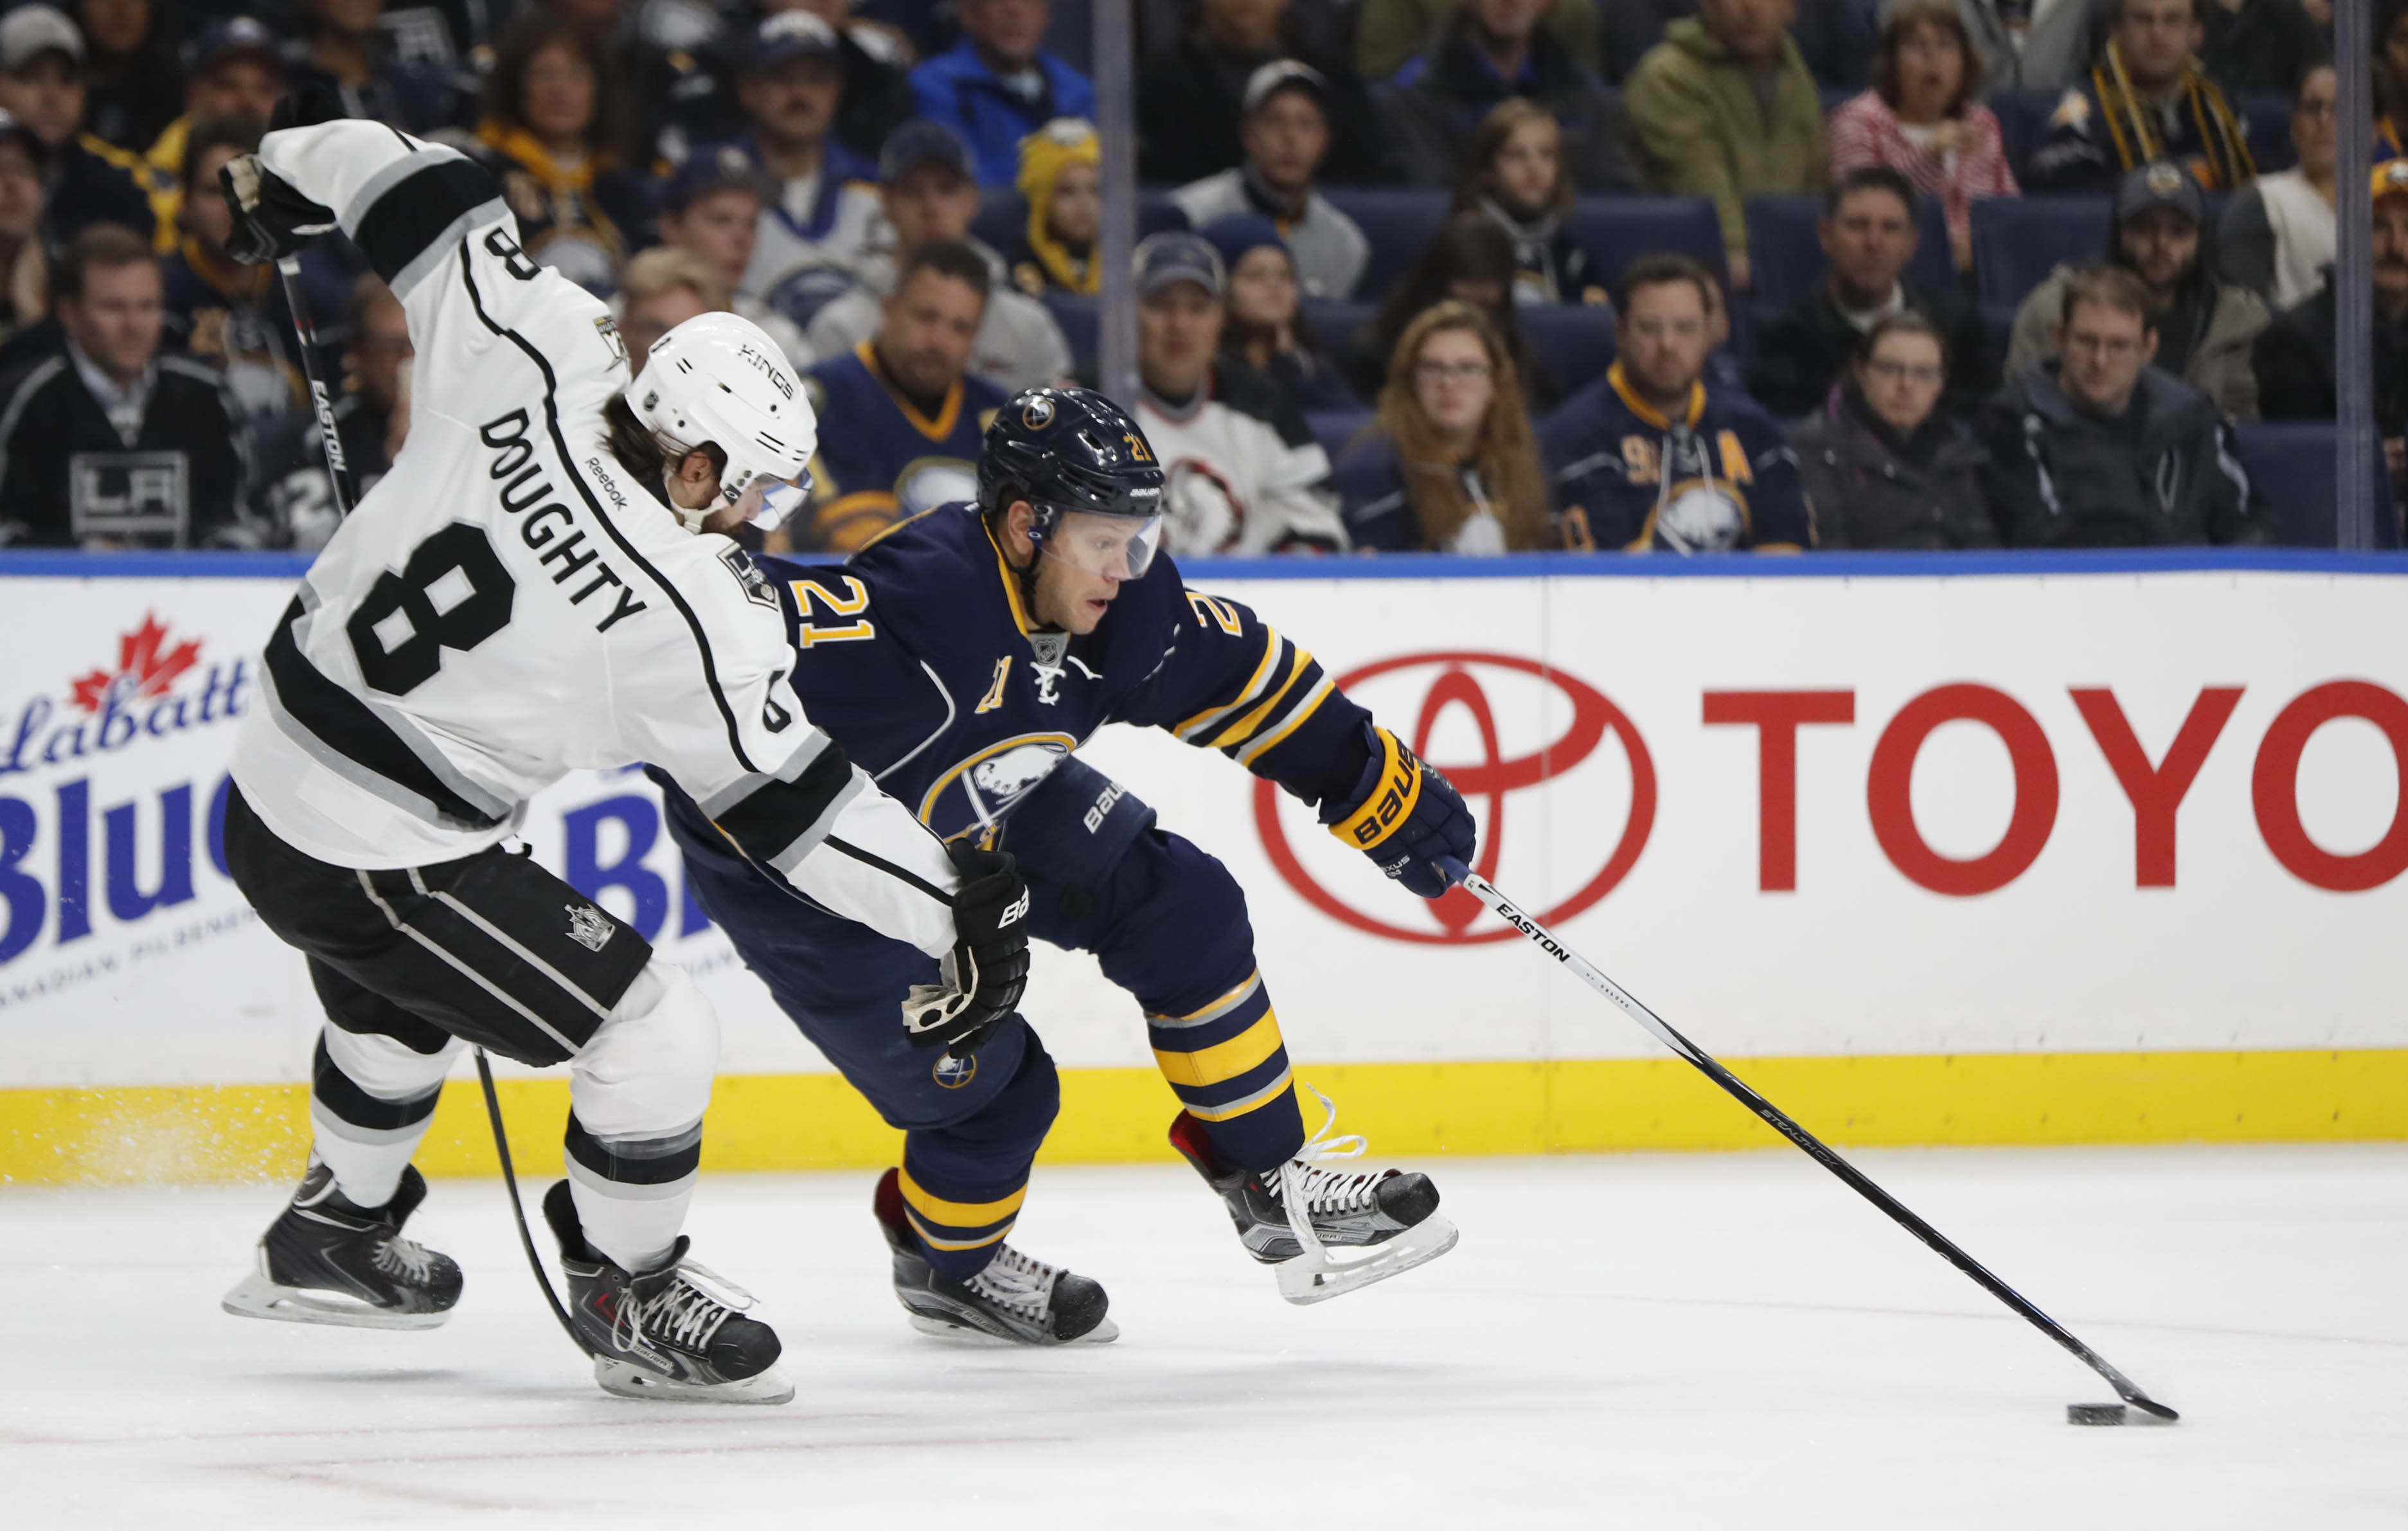 Kyle Okposo, who helped Buffalo beat the Kings, will look for a win against his old team Friday. (Harry Scull Jr./Buffalo News)